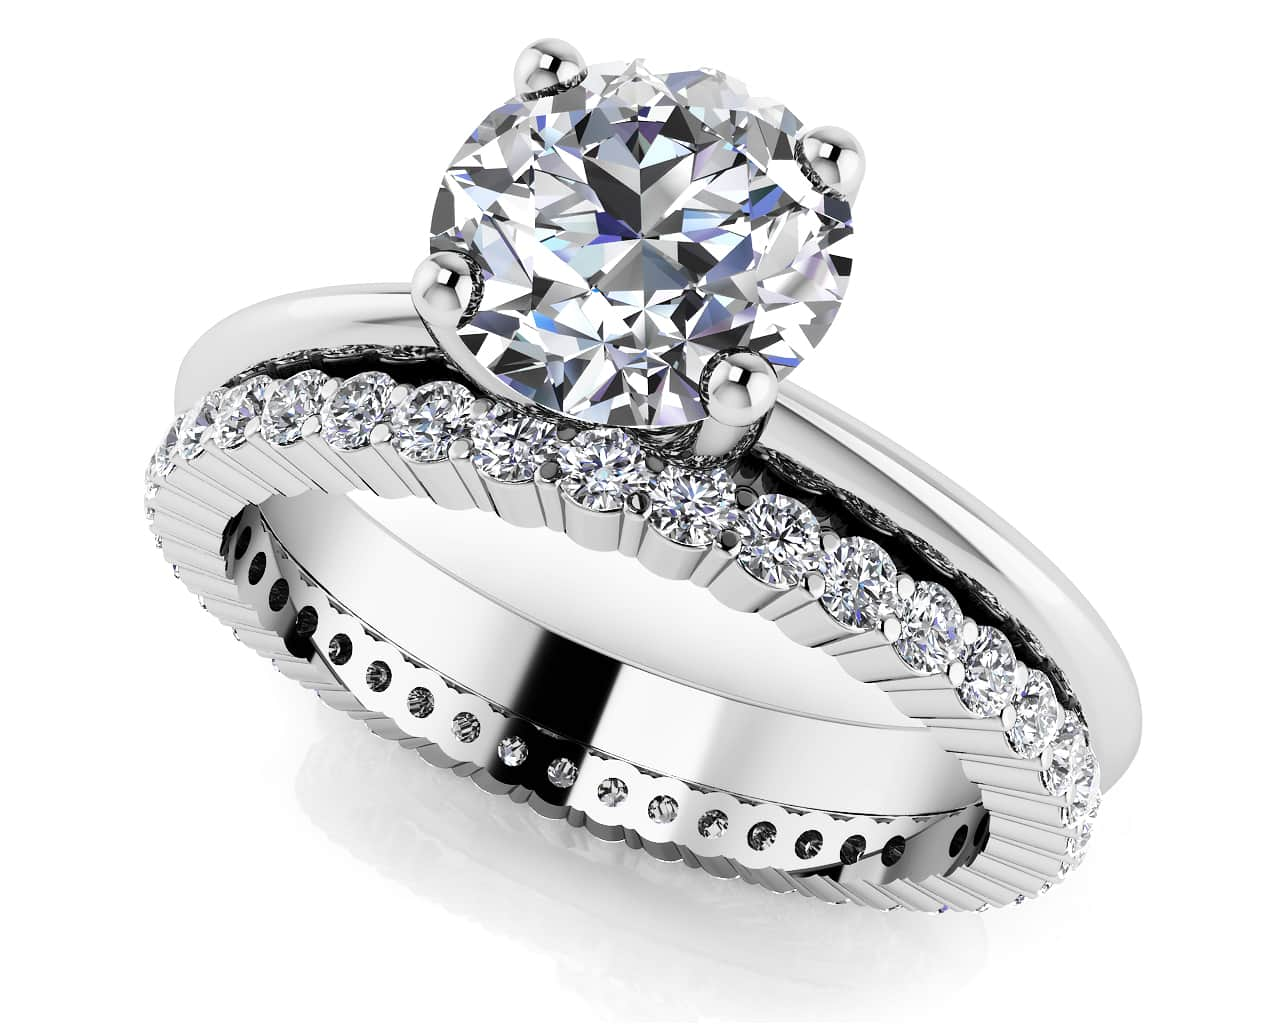 set solitaire vancouver ring with diamond bridal wedding custom tapered sets matching rings engagement pavee